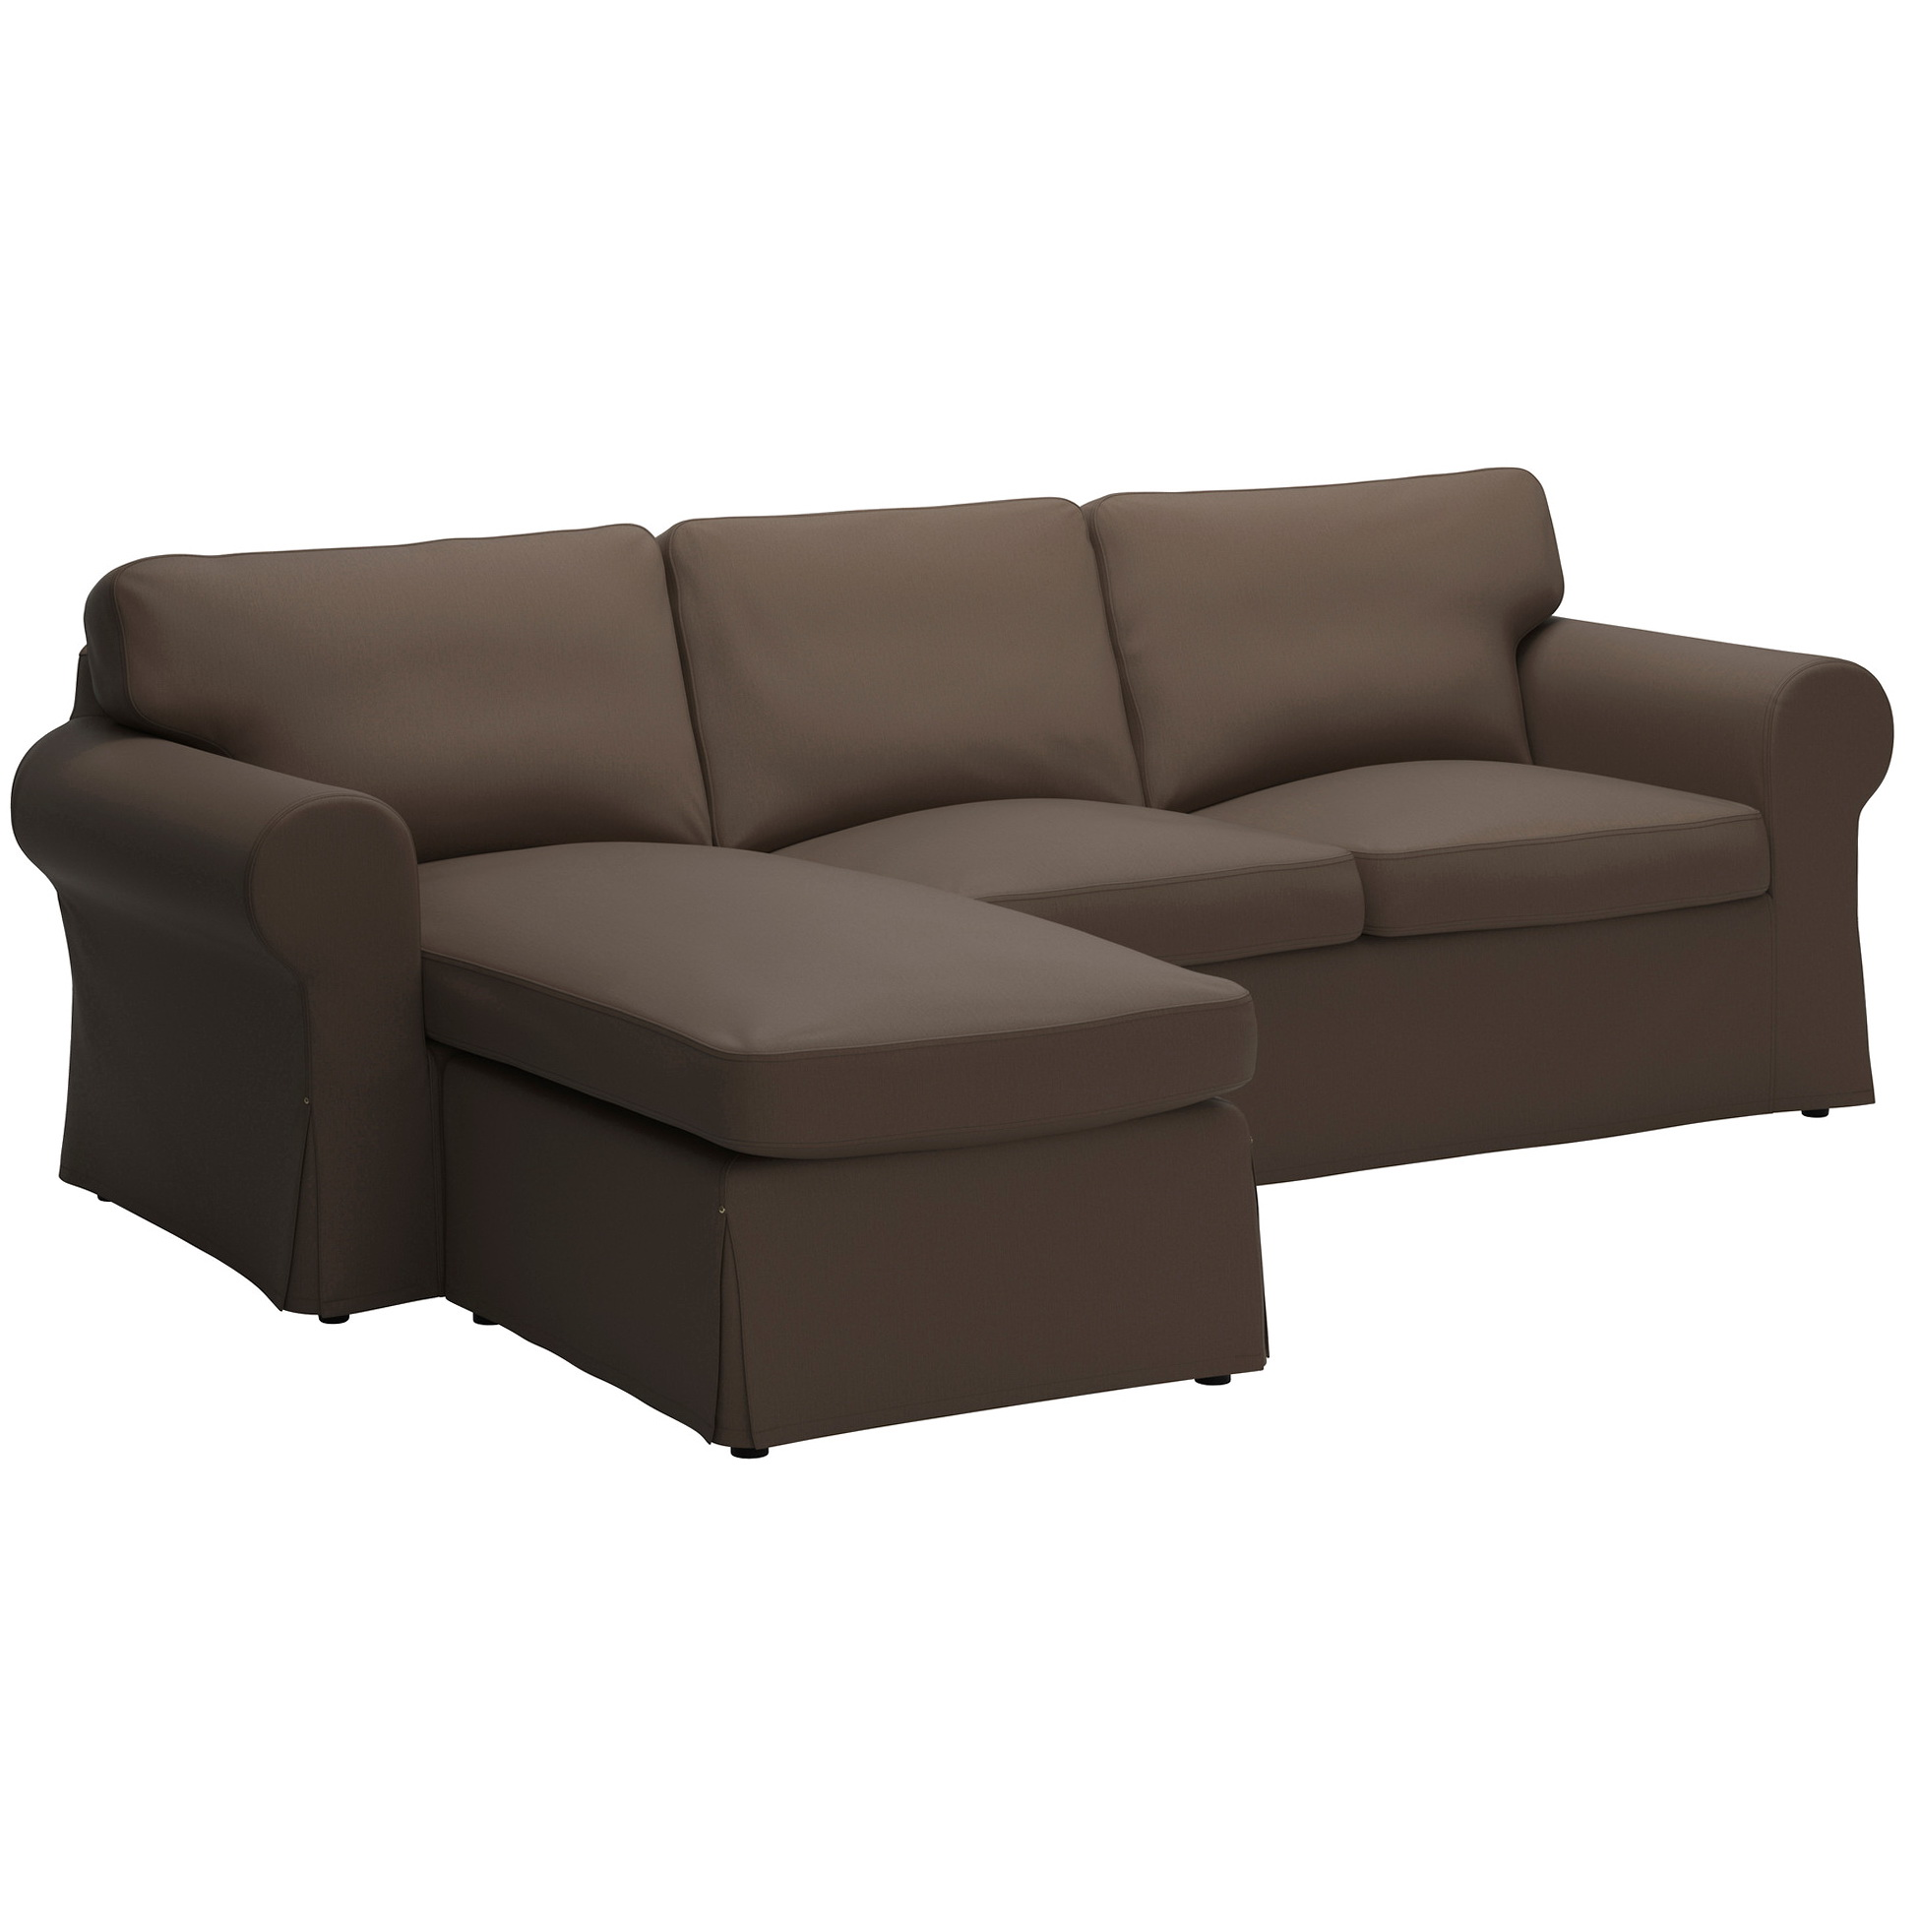 Ektorp Loveseat And Chaise Lounge Home Design Ideas